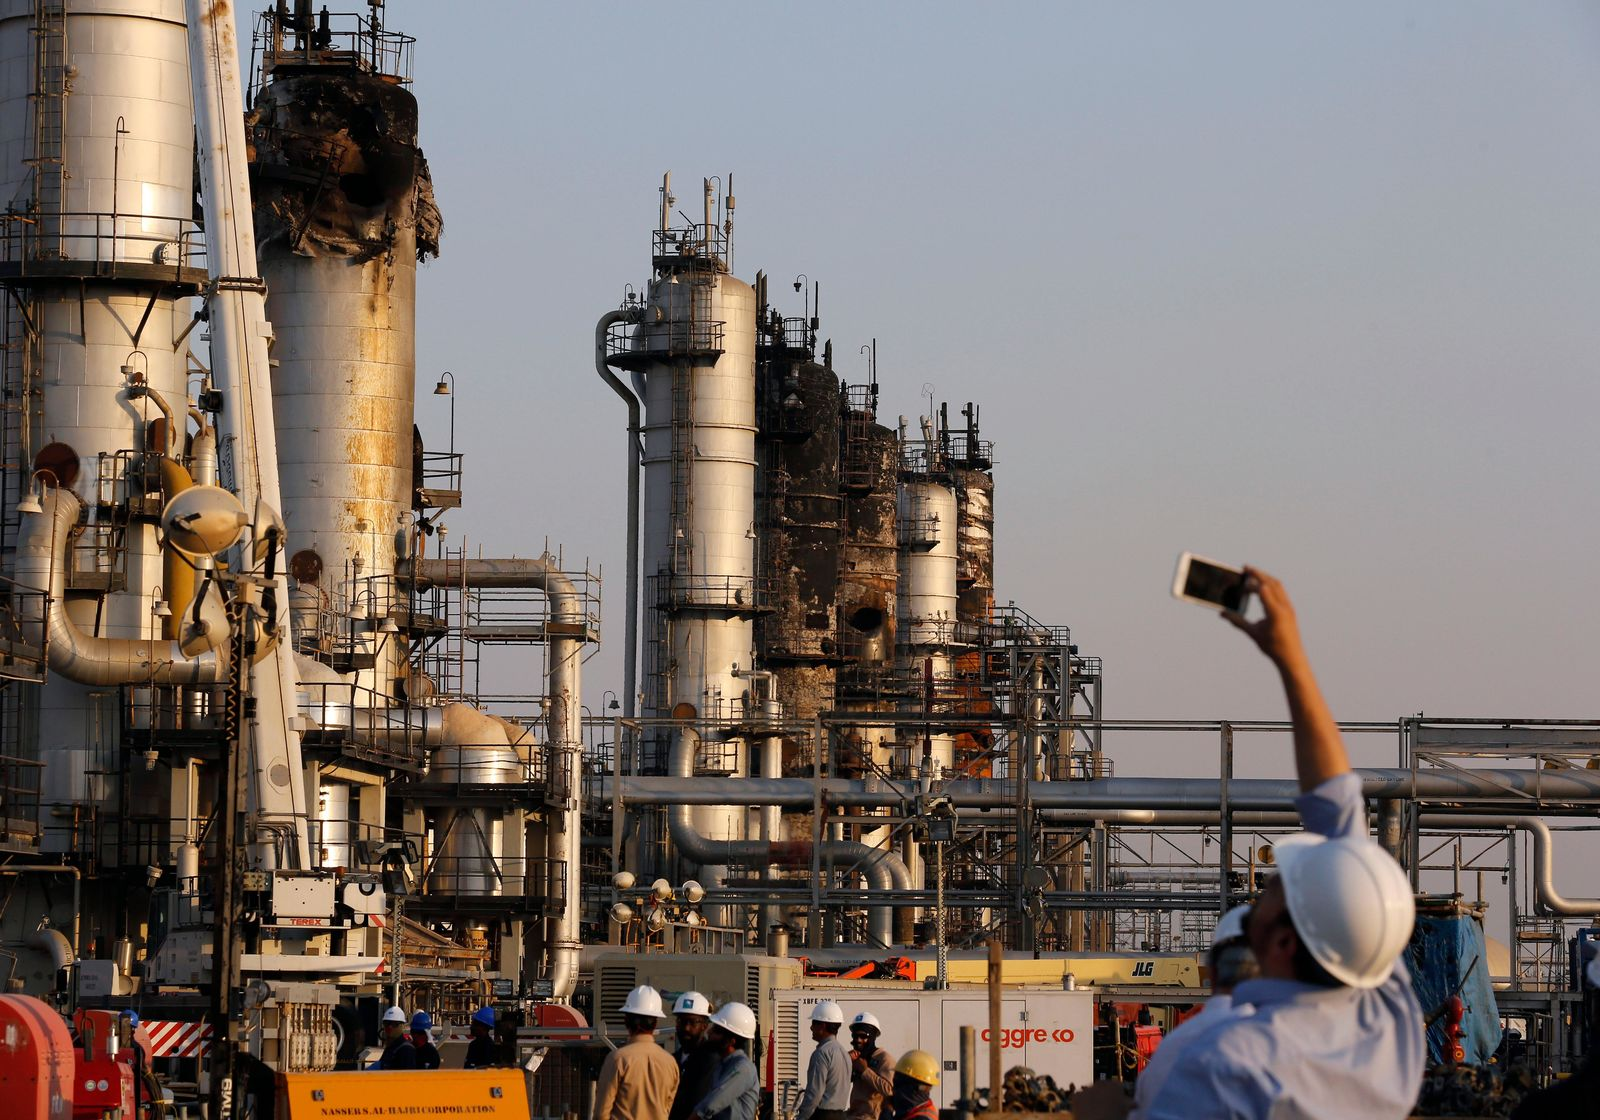 During a trip organized by Saudi information ministry, a cameraman films Aramco's oil processing facility after the recent Sept. 14 attack in Abqaiq, near Dammam in the Kingdom's Eastern Province, Friday, Sept. 20, 2019. (AP Photo/Amr Nabil)